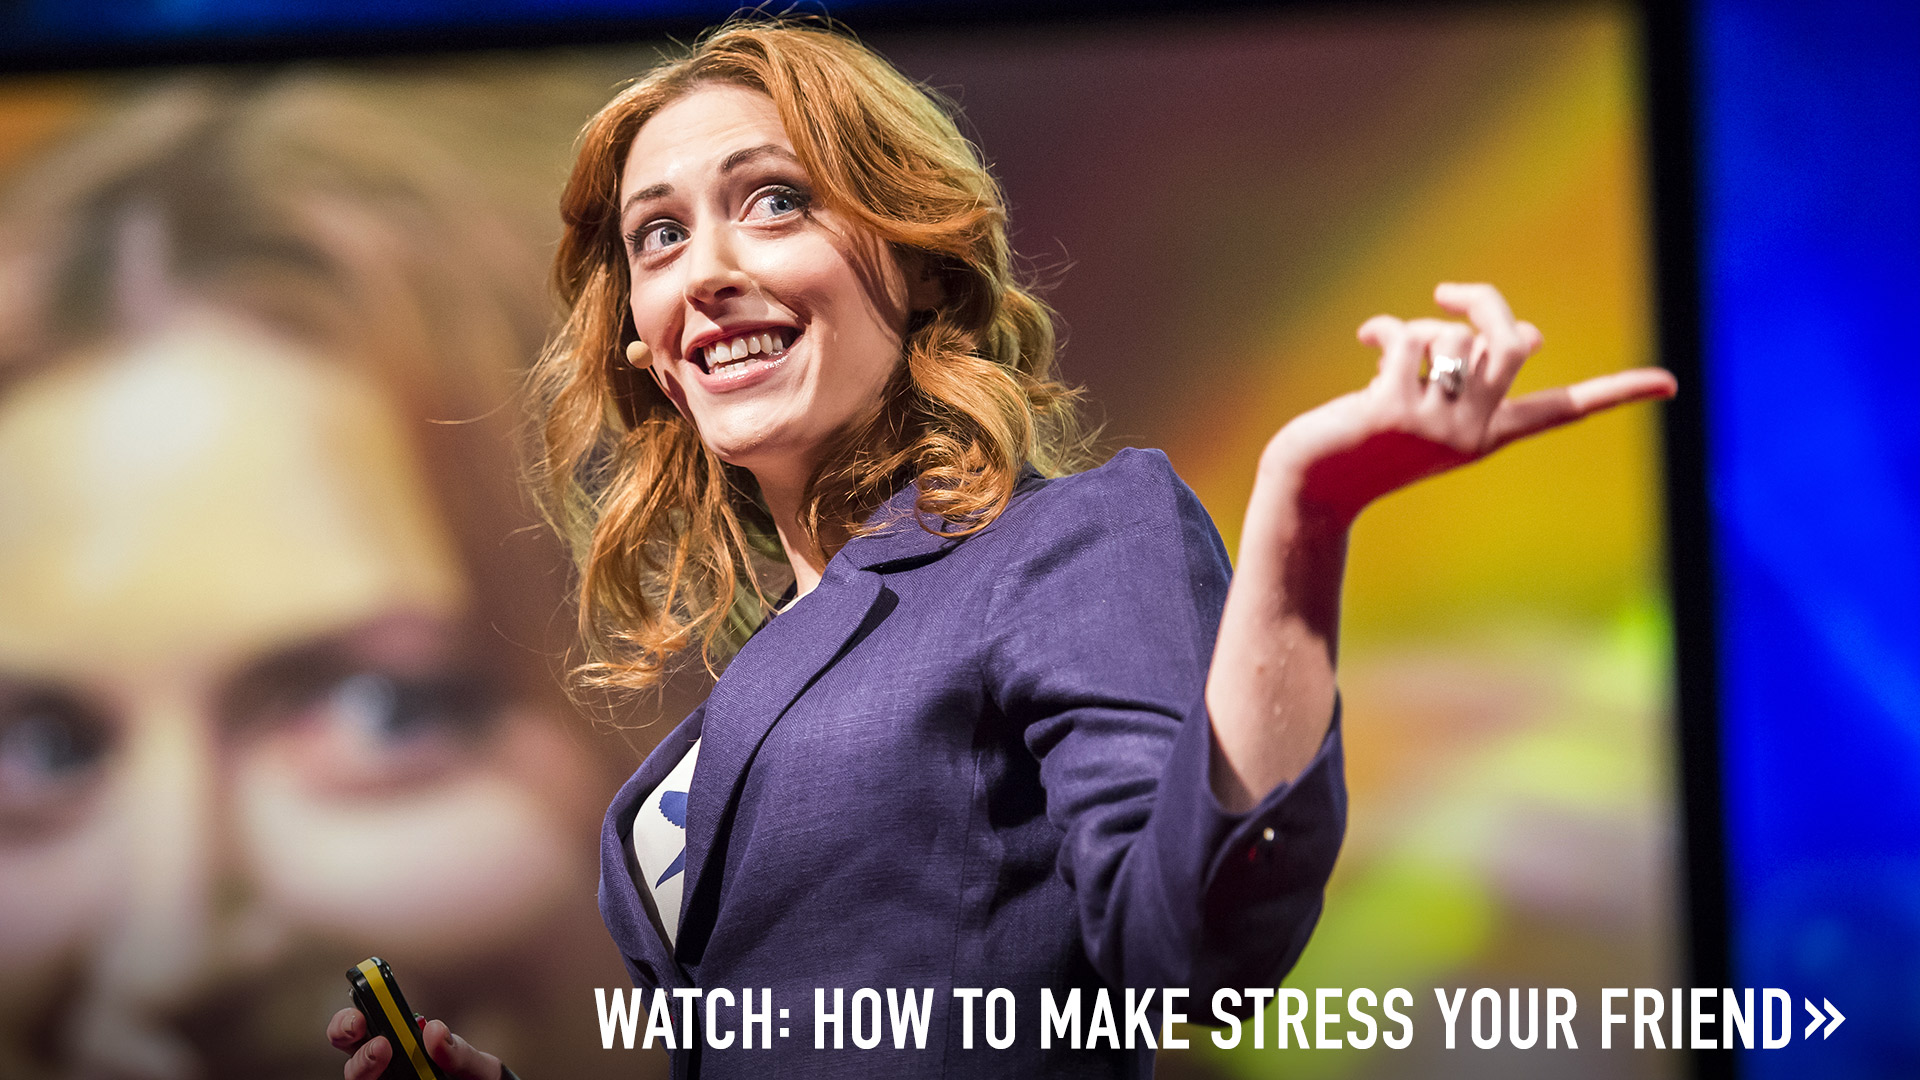 How to make stress your friend | ideas.ted.com